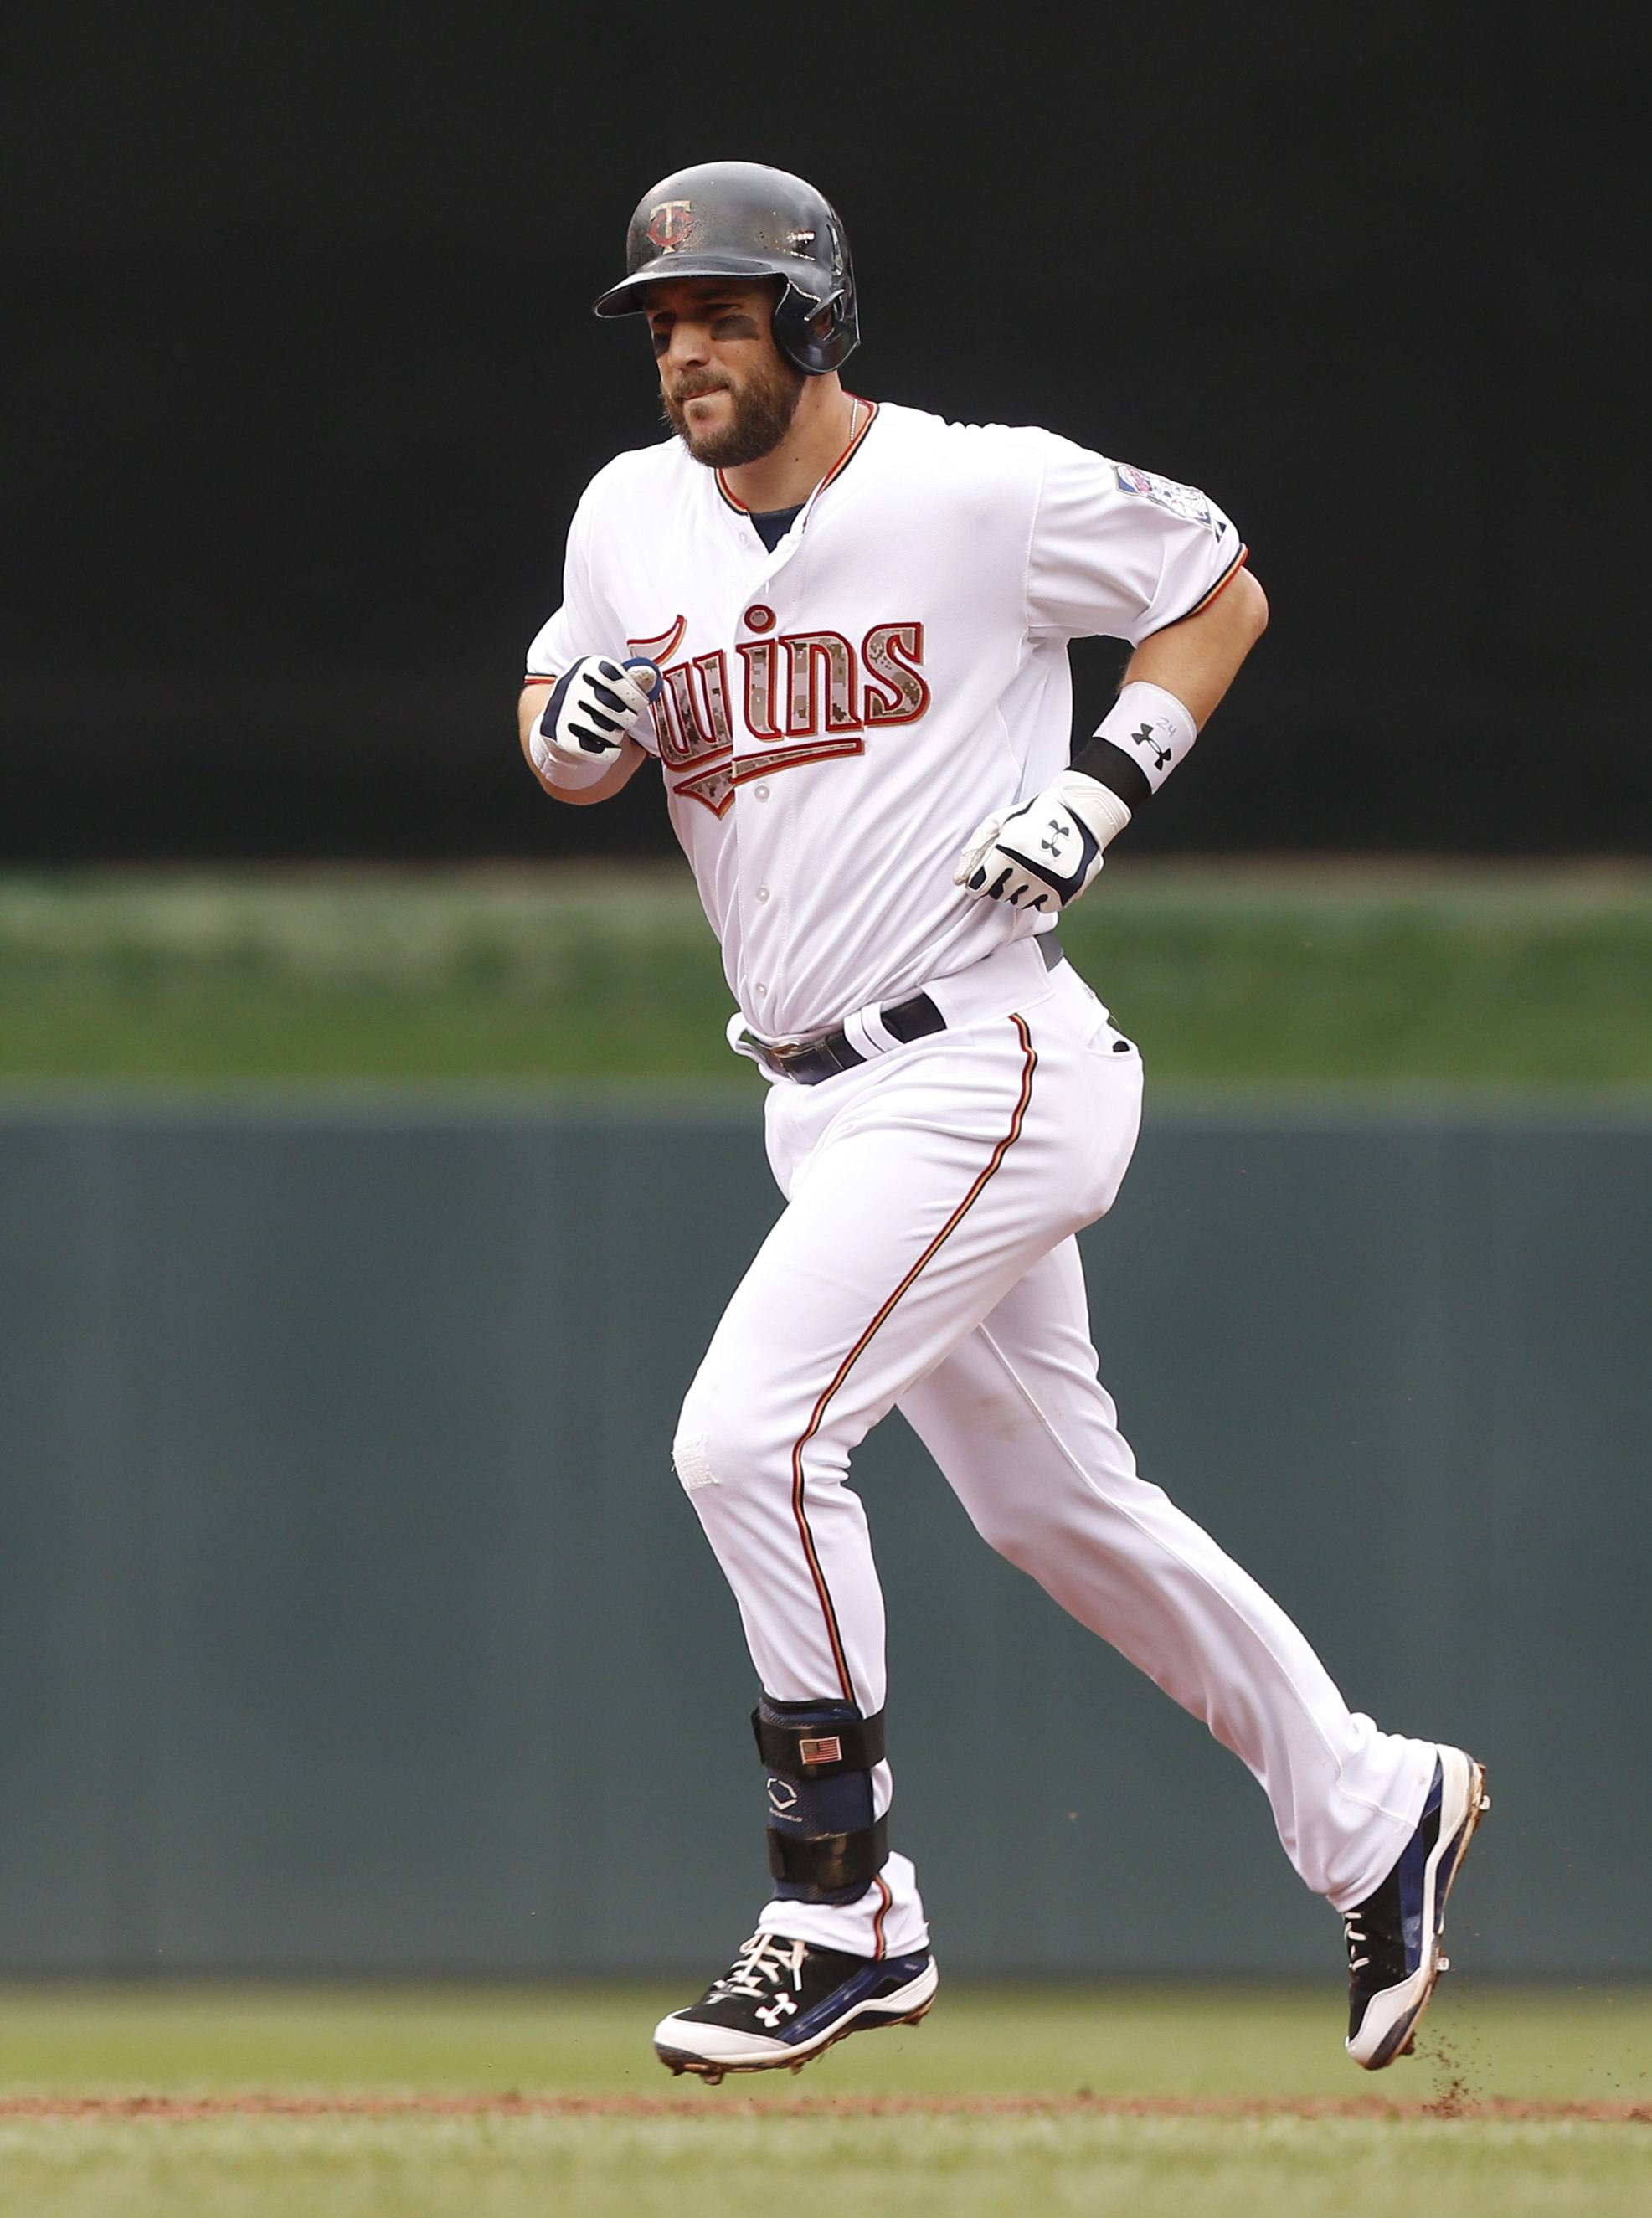 Minnesota Twins' Trevor Plouffe rounds the bases on a three-run home run off Boston Red Sox pitcher Joe Kelly in the second inning of a baseball game, Monday, May 25, 2015, in Minneapolis. (AP Photo/Jim Mone)